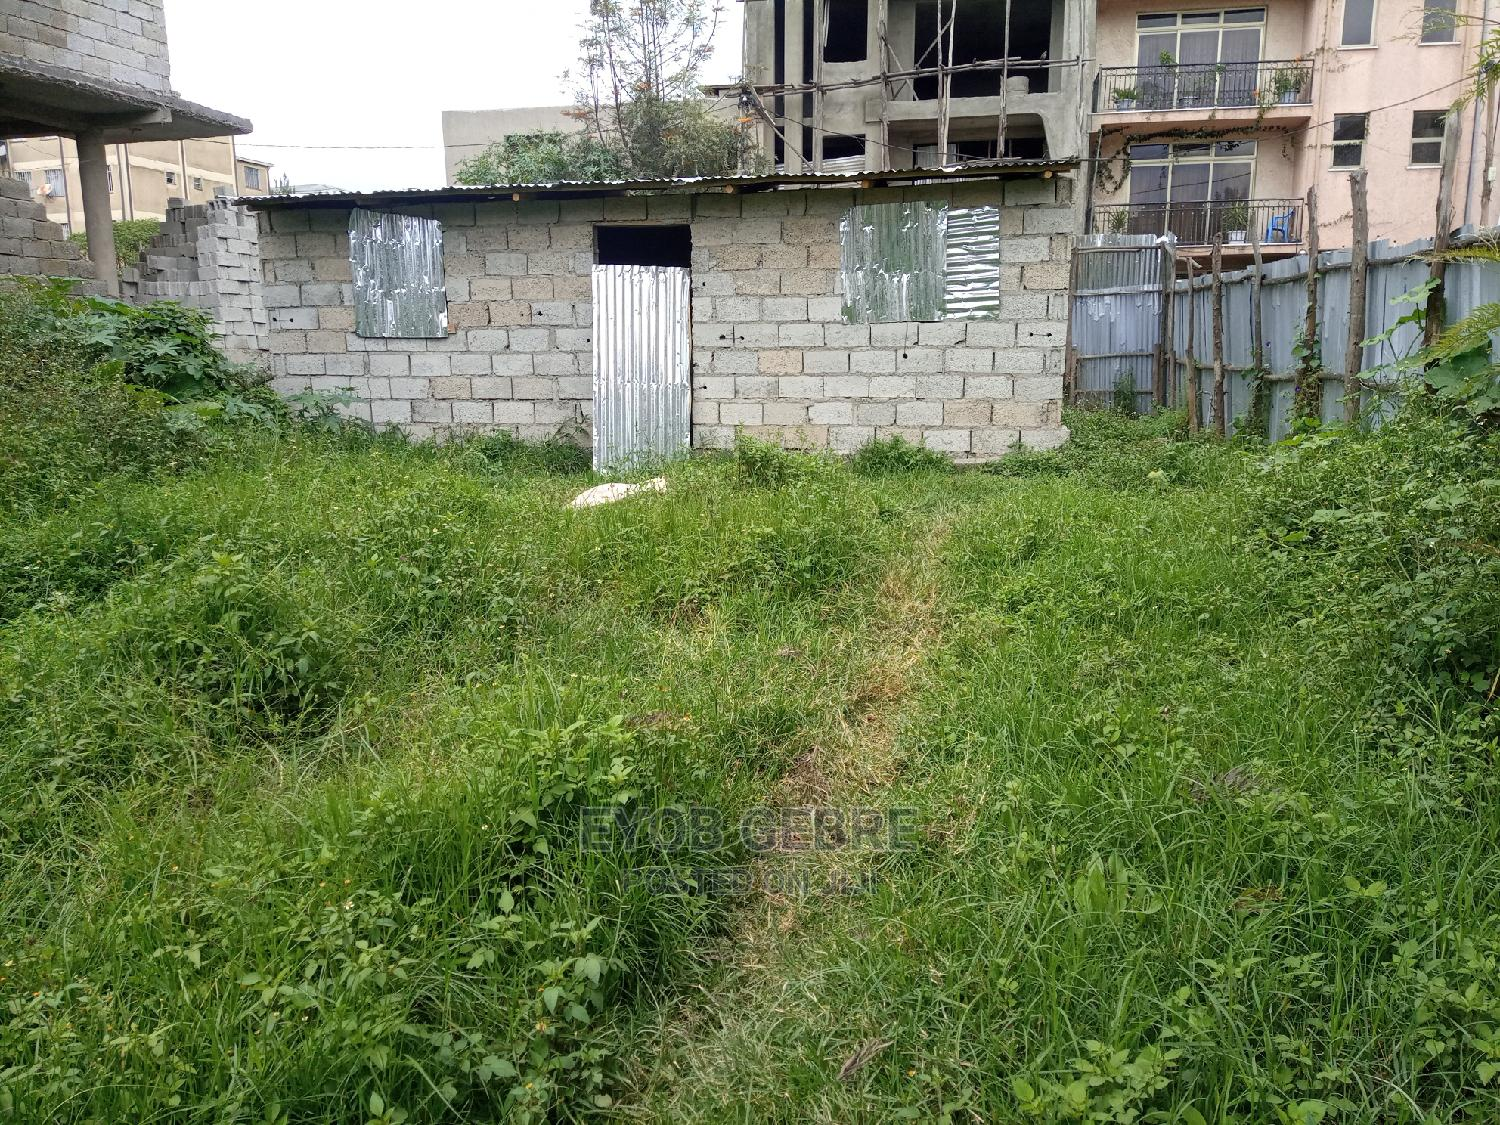 Residential   Land & Plots For Sale for sale in Nifas Silk-Lafto, Addis Ababa, Ethiopia